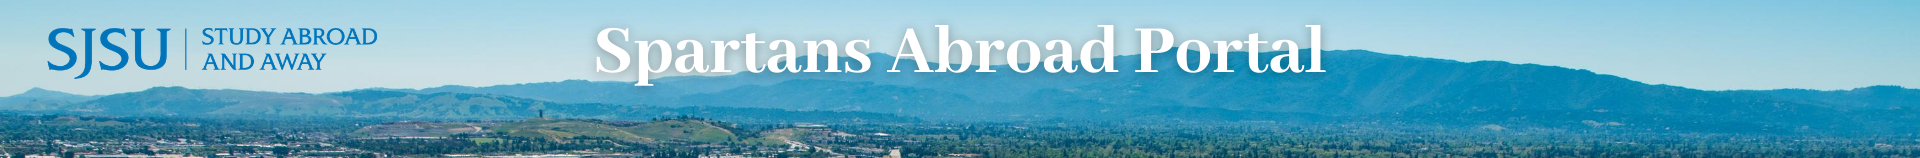 Study Abroad and Away Office - San Jose State University